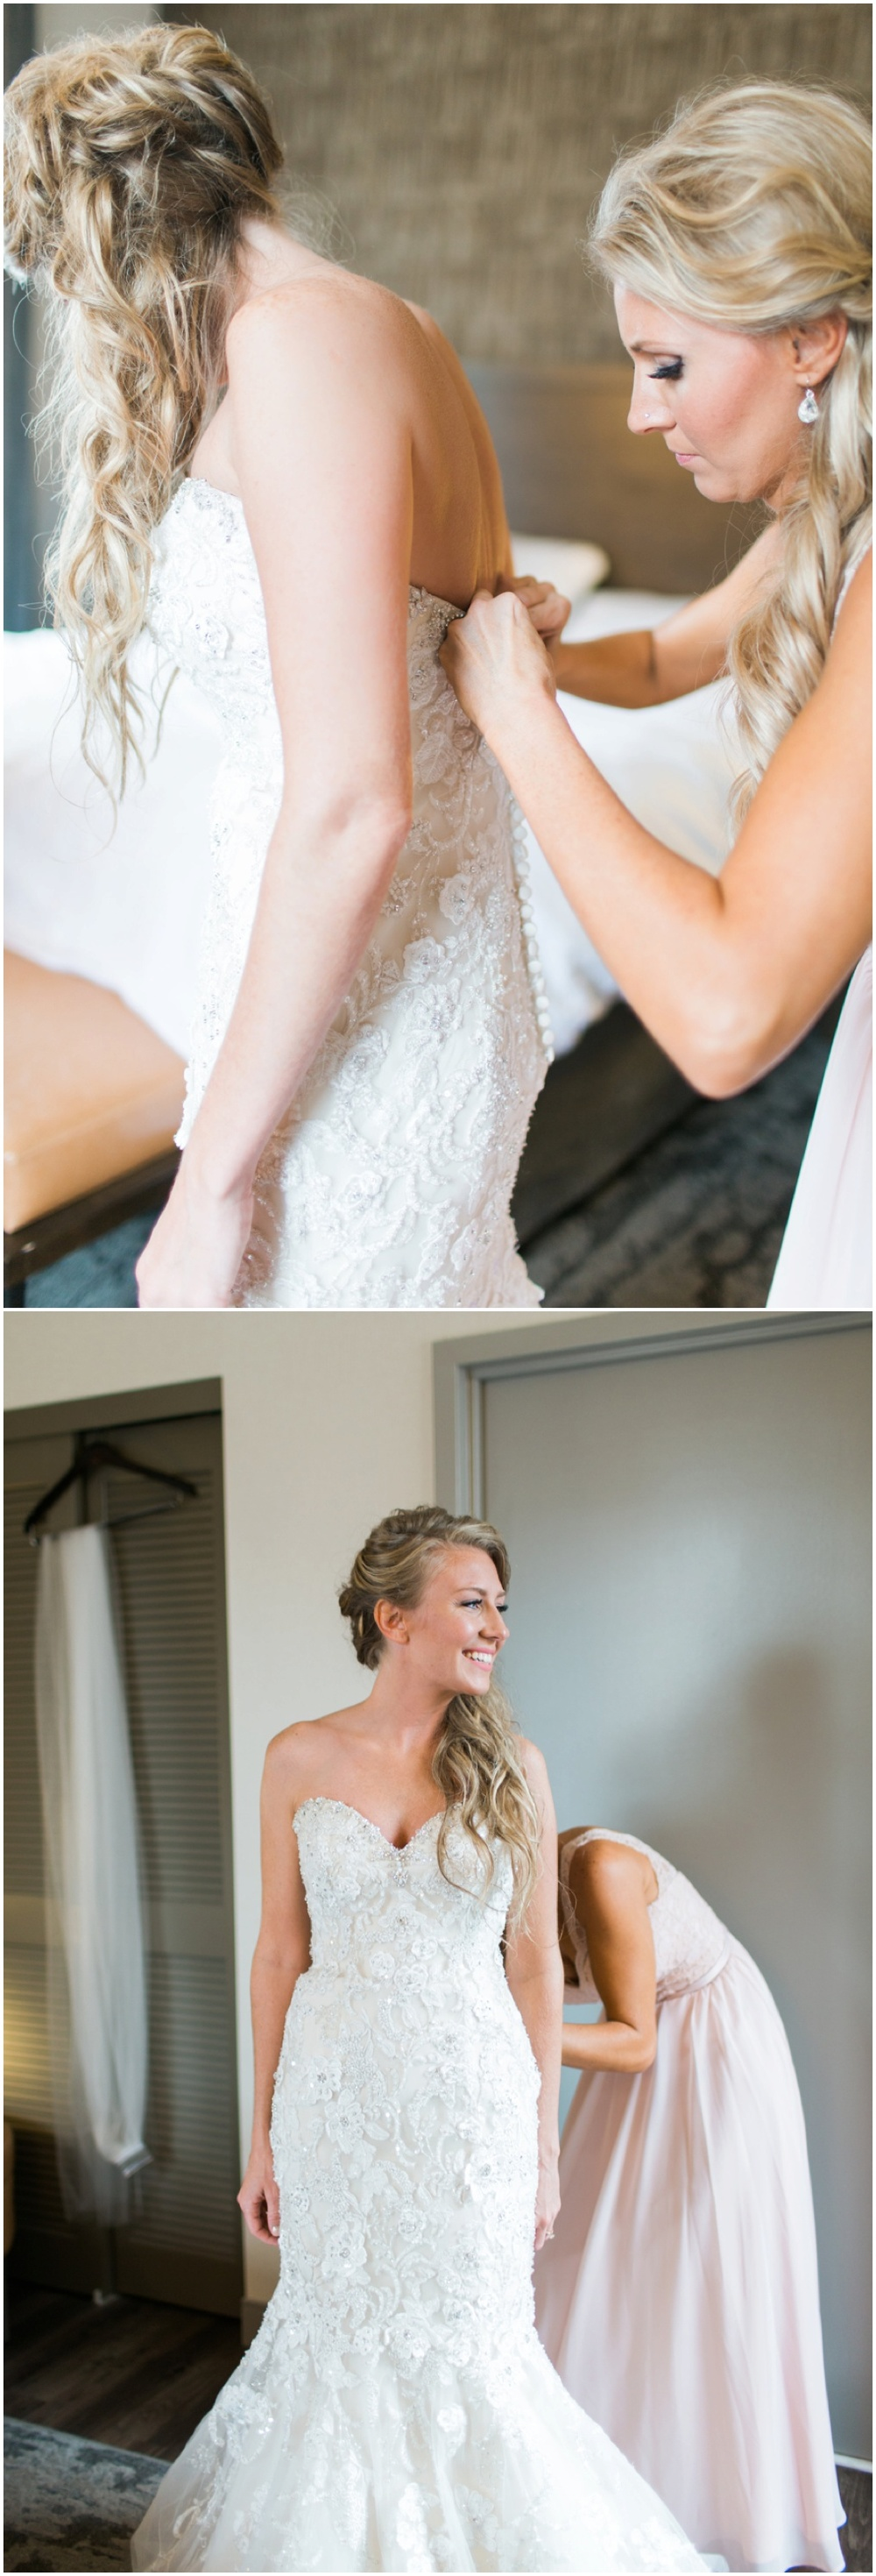 weddingphotostlouis4.jpg